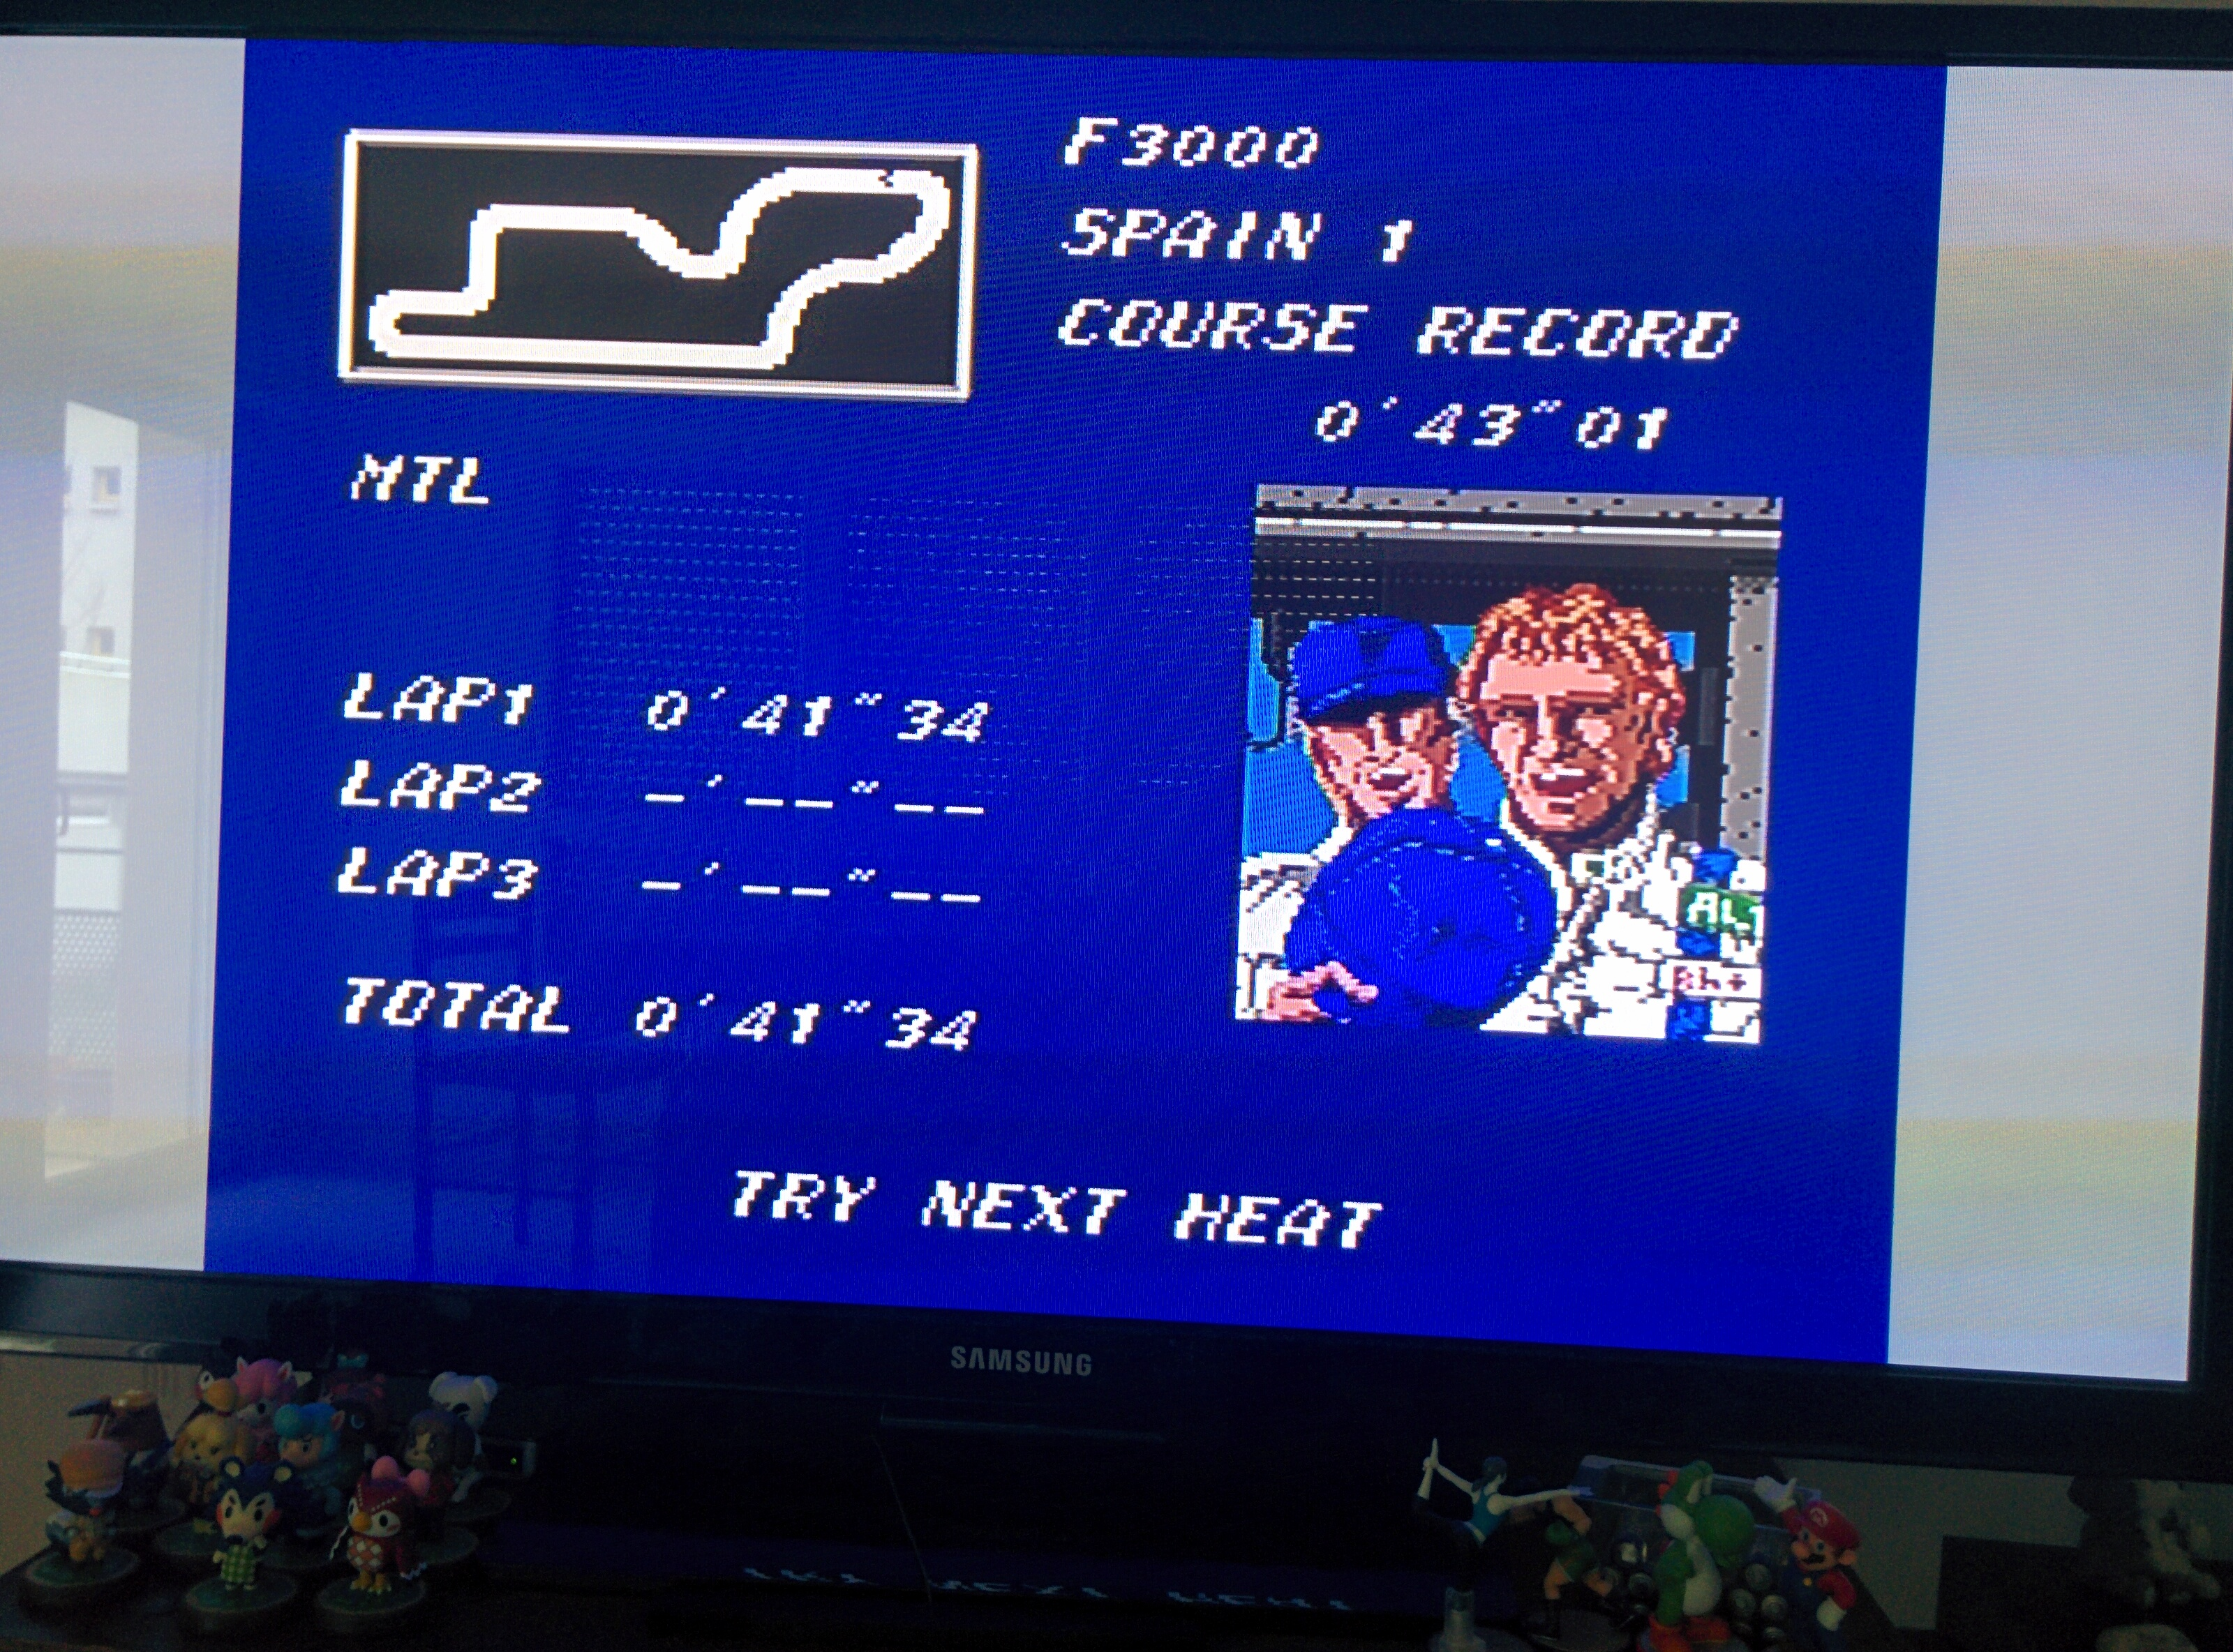 Mantalow: Final Lap Twin [Test/ 1 Lap/ F3000/ Spain 1] (TurboGrafx-16/PC Engine) 0:00:41.34 points on 2016-02-08 09:01:09